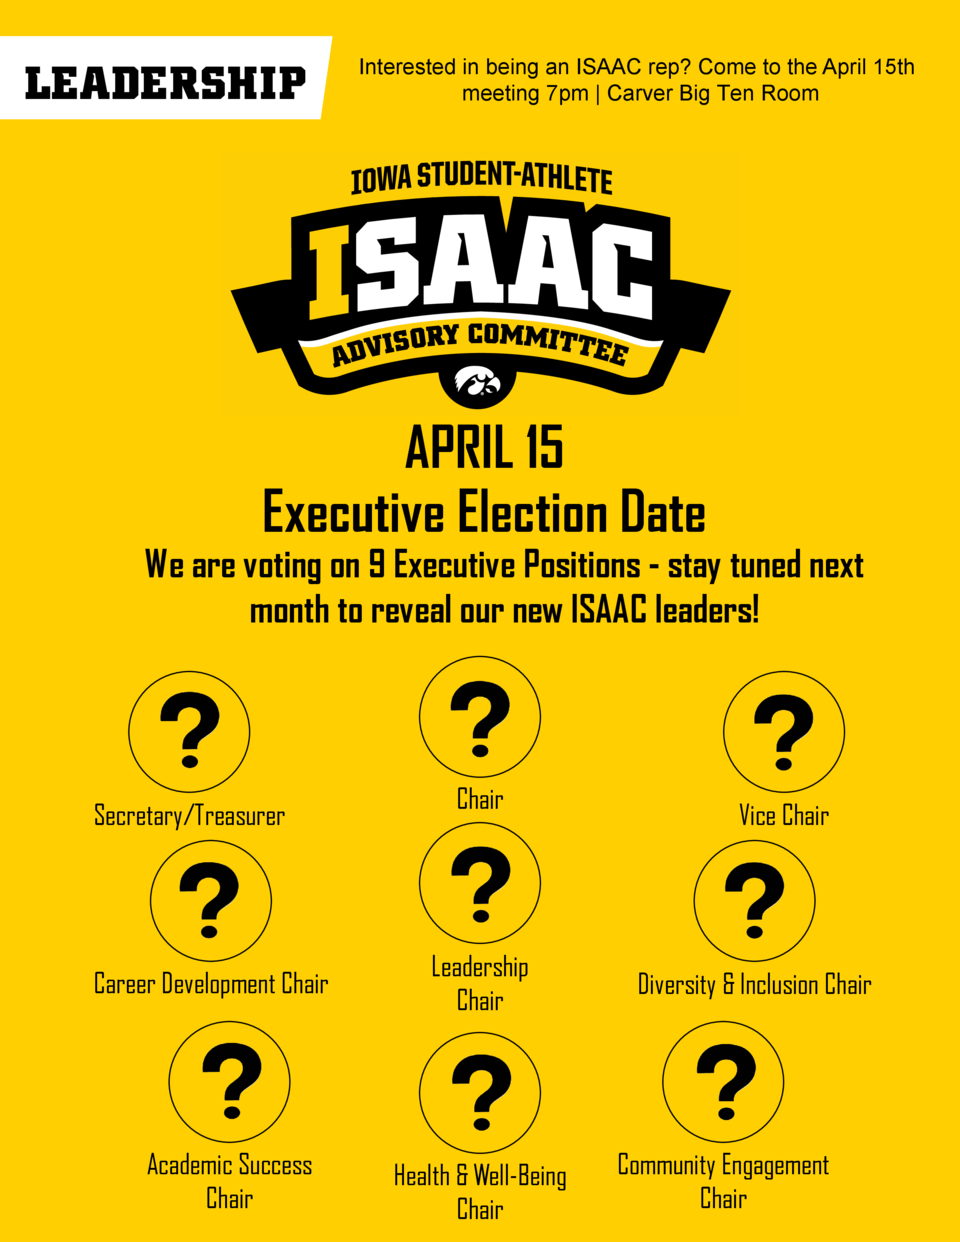 LEADERSHIP  Interested in being an ISAAC rep  Come to the April 15th meeting 7pm   Carver Big Ten Room  APRIL 15 Executive...